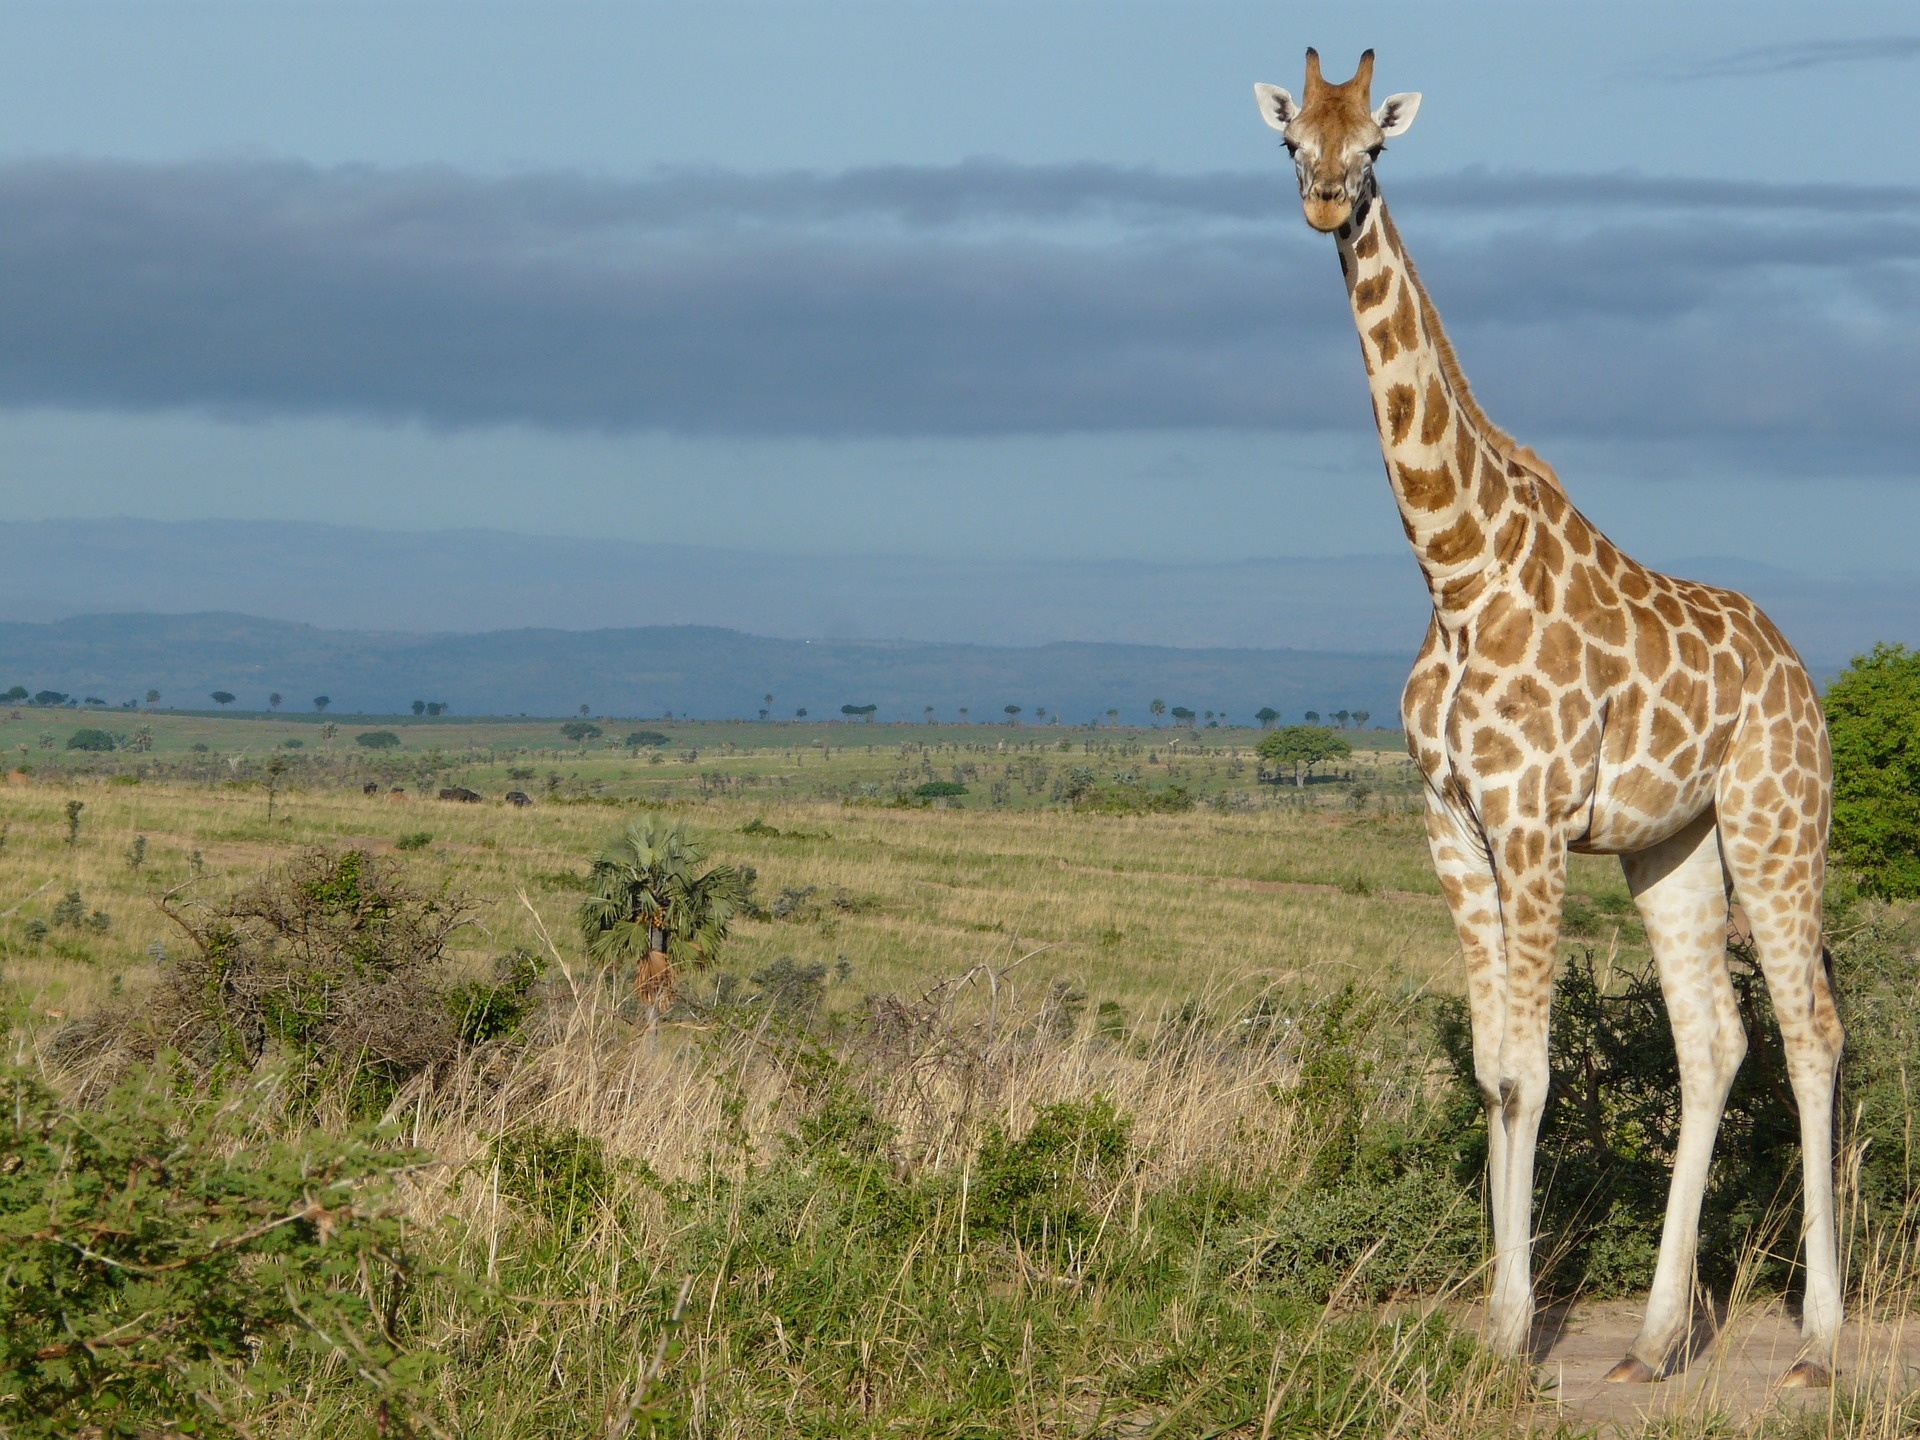 Giraffe in Murchison Falls National Park, Uganda